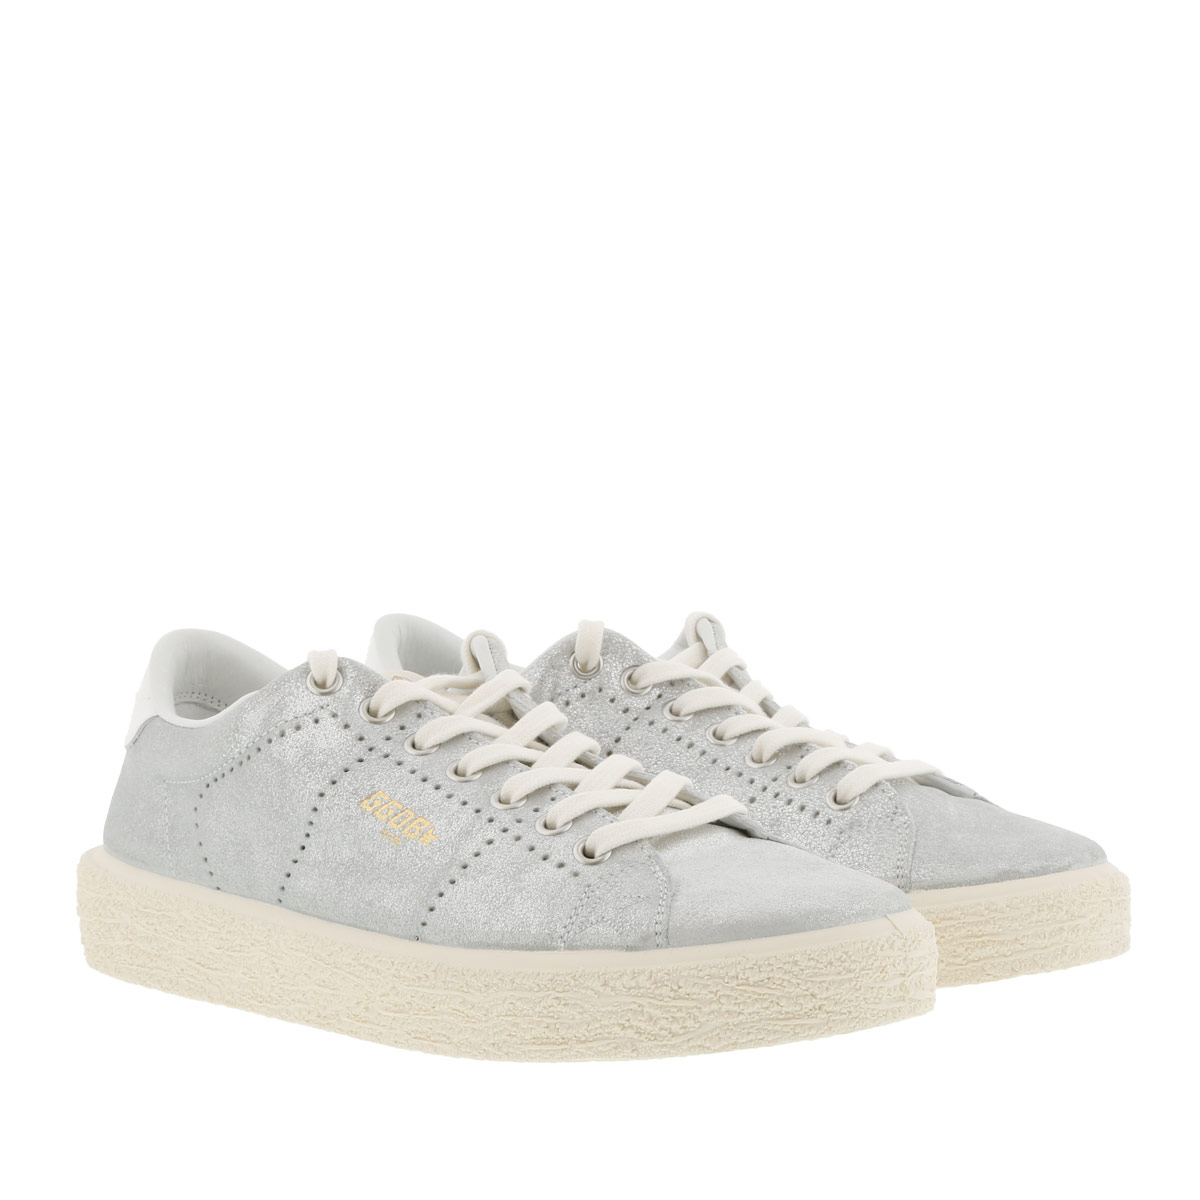 Golden Goose Sneakers - Tennis Sneaker Silver - in silber - für Damen